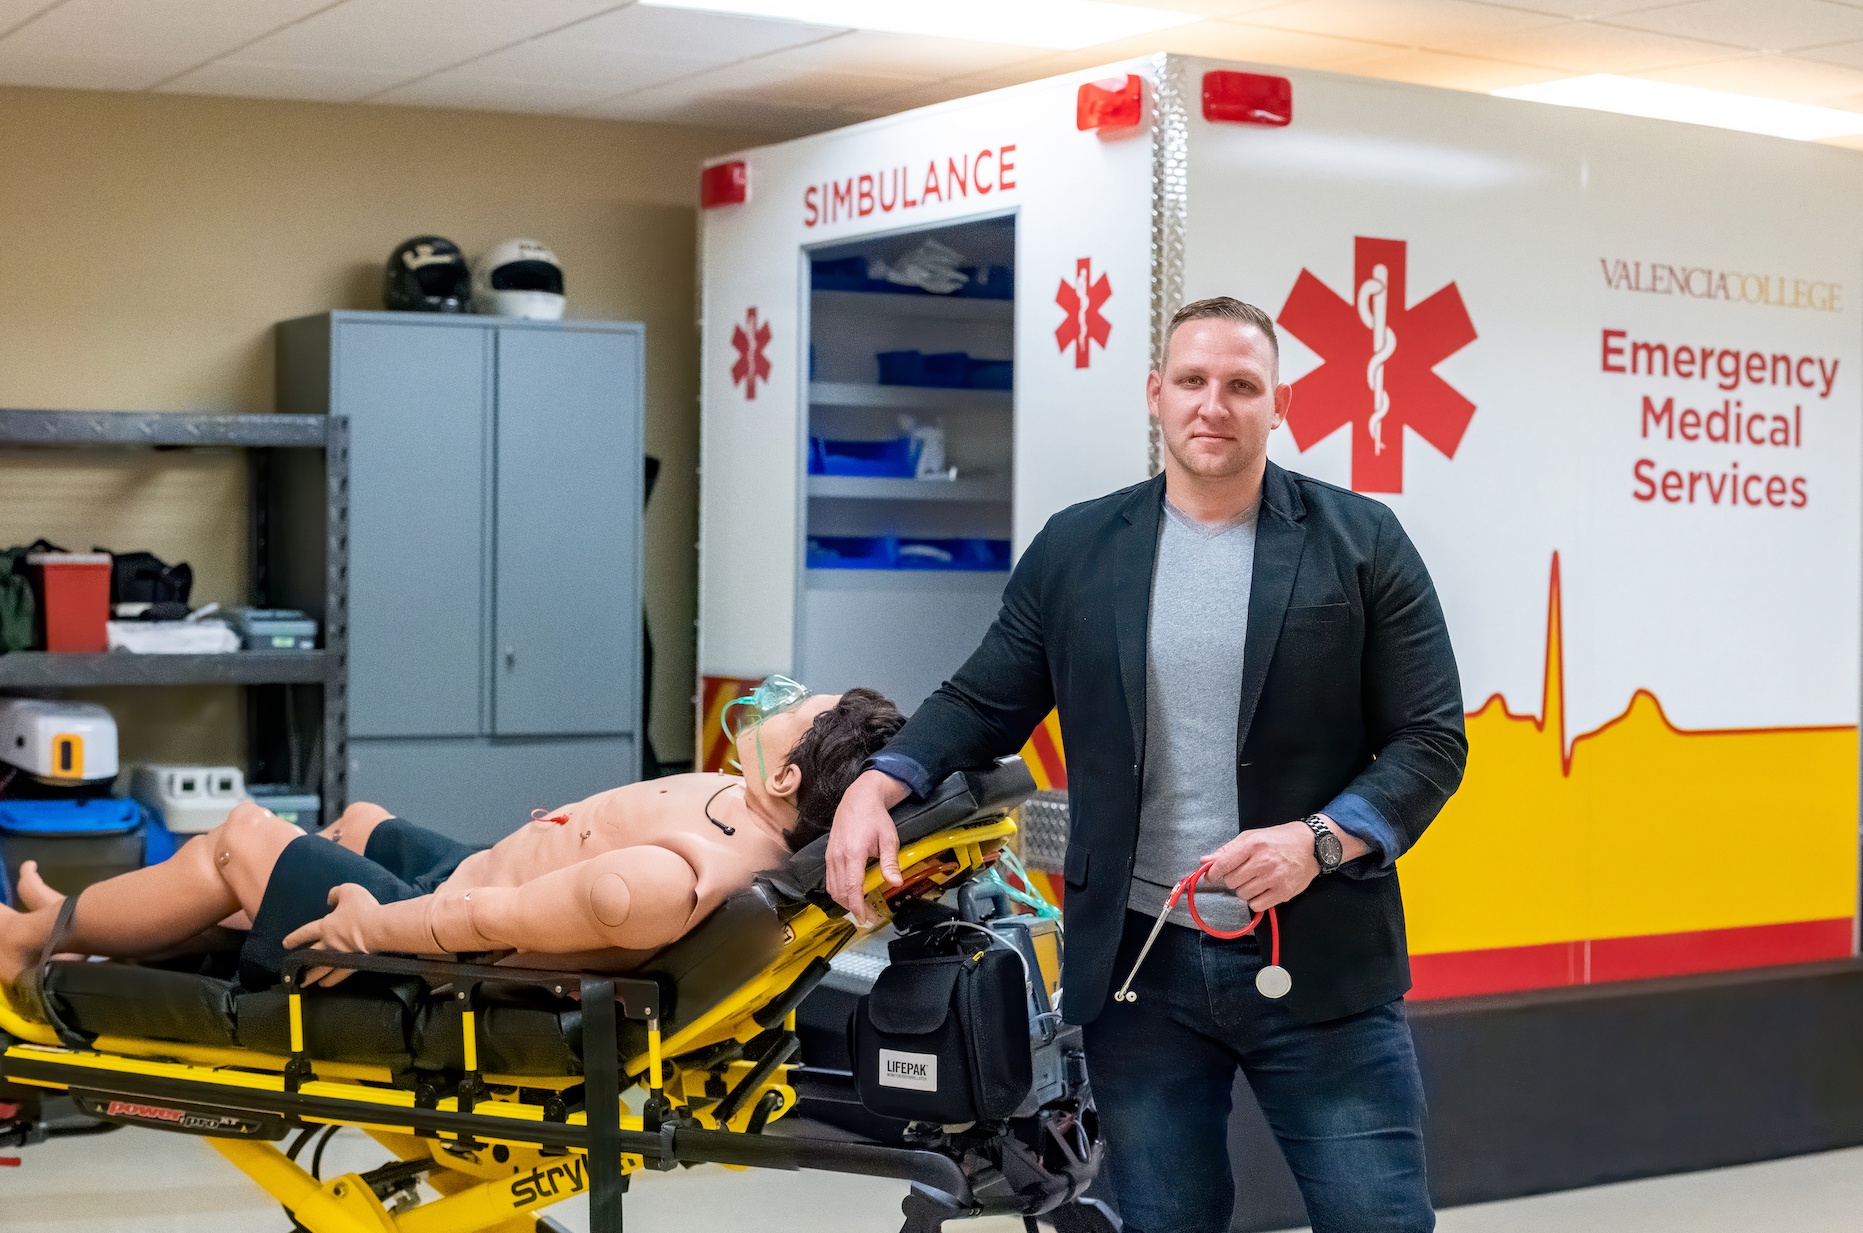 From firefighter to surgical resident, Warren Evans credits Valencia for sparking his love for learning